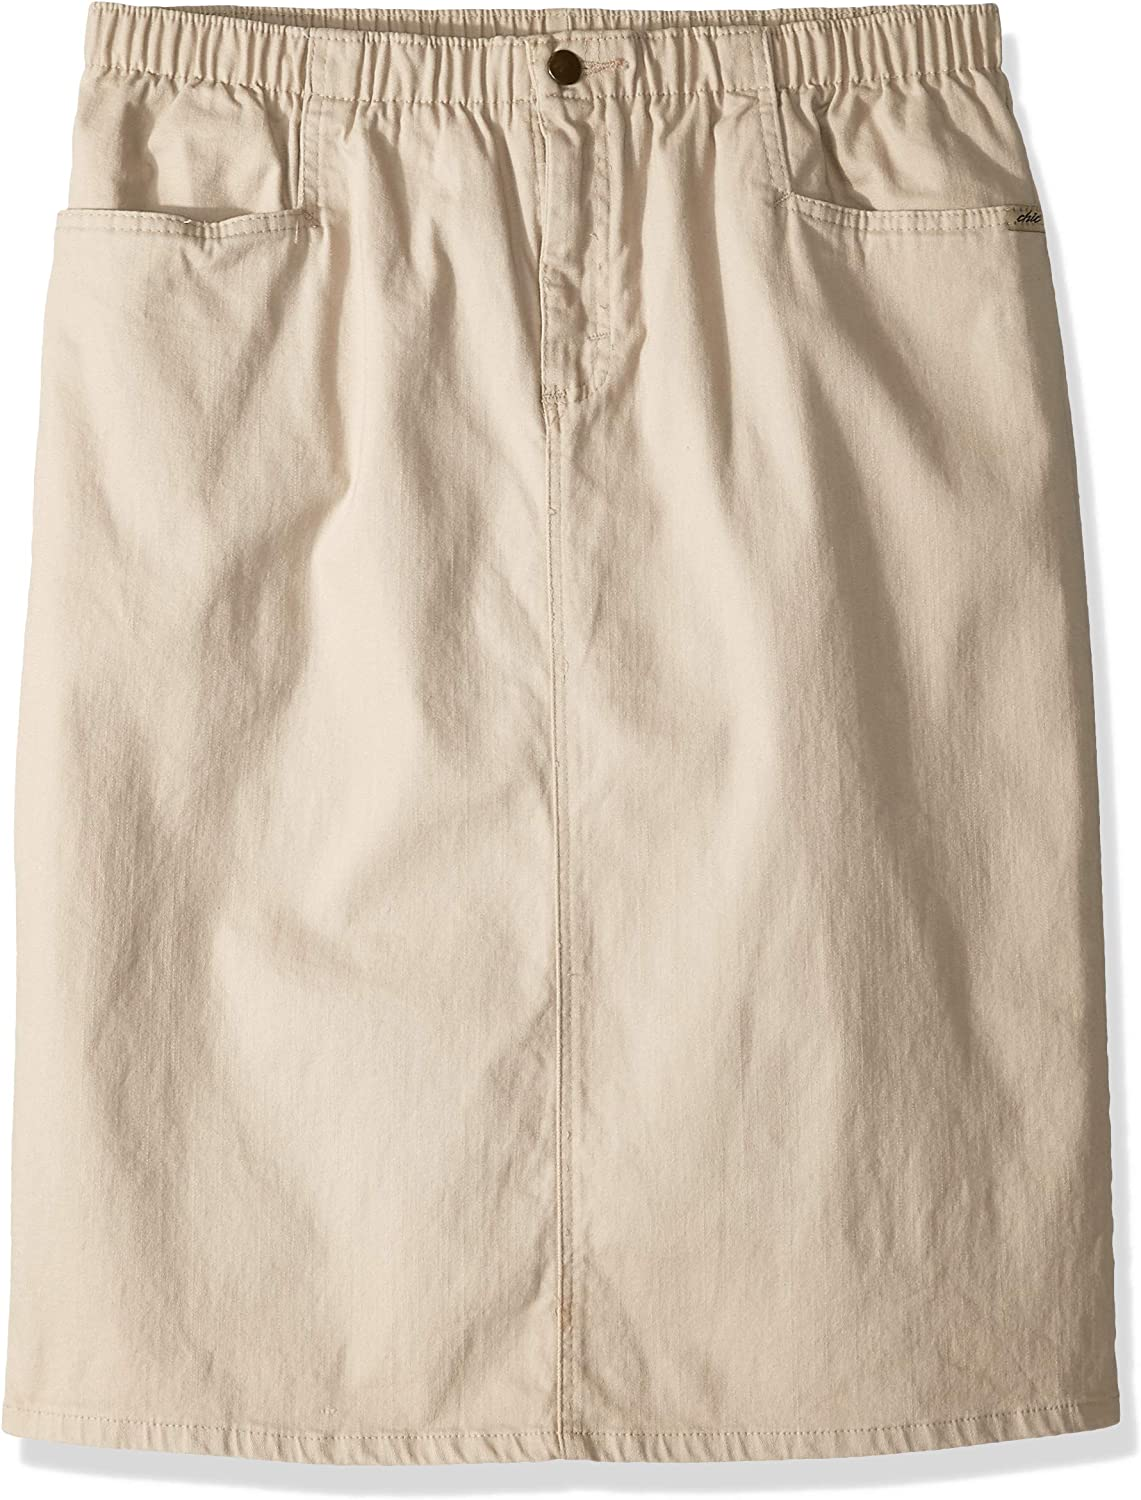 Chic Sale SALE% OFF Classic Collection Women's Skirt L-Pocket Shipping included Stretch Denim